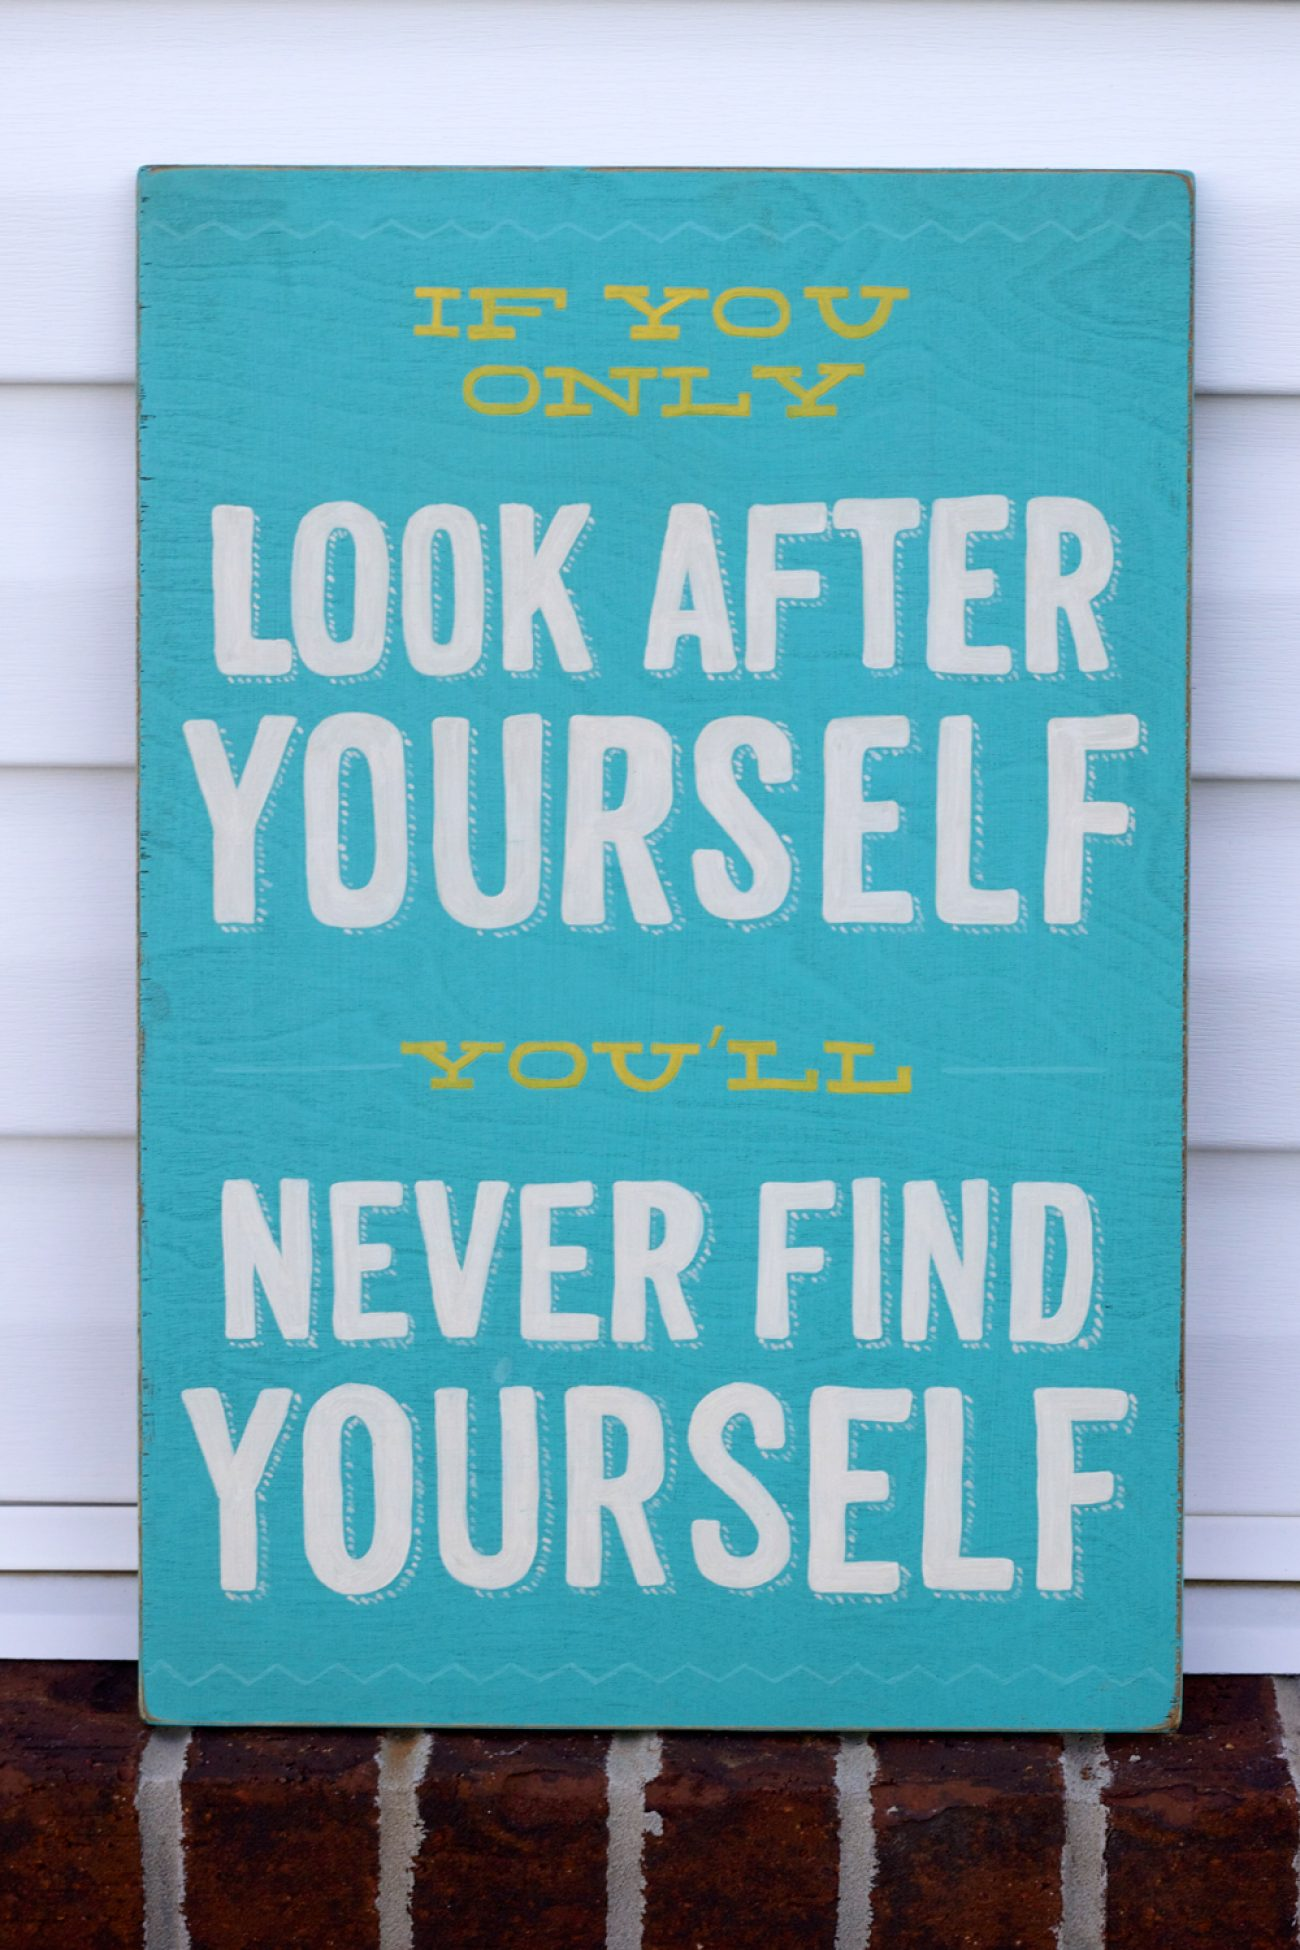 If you only look after yourself you'll never find yourself